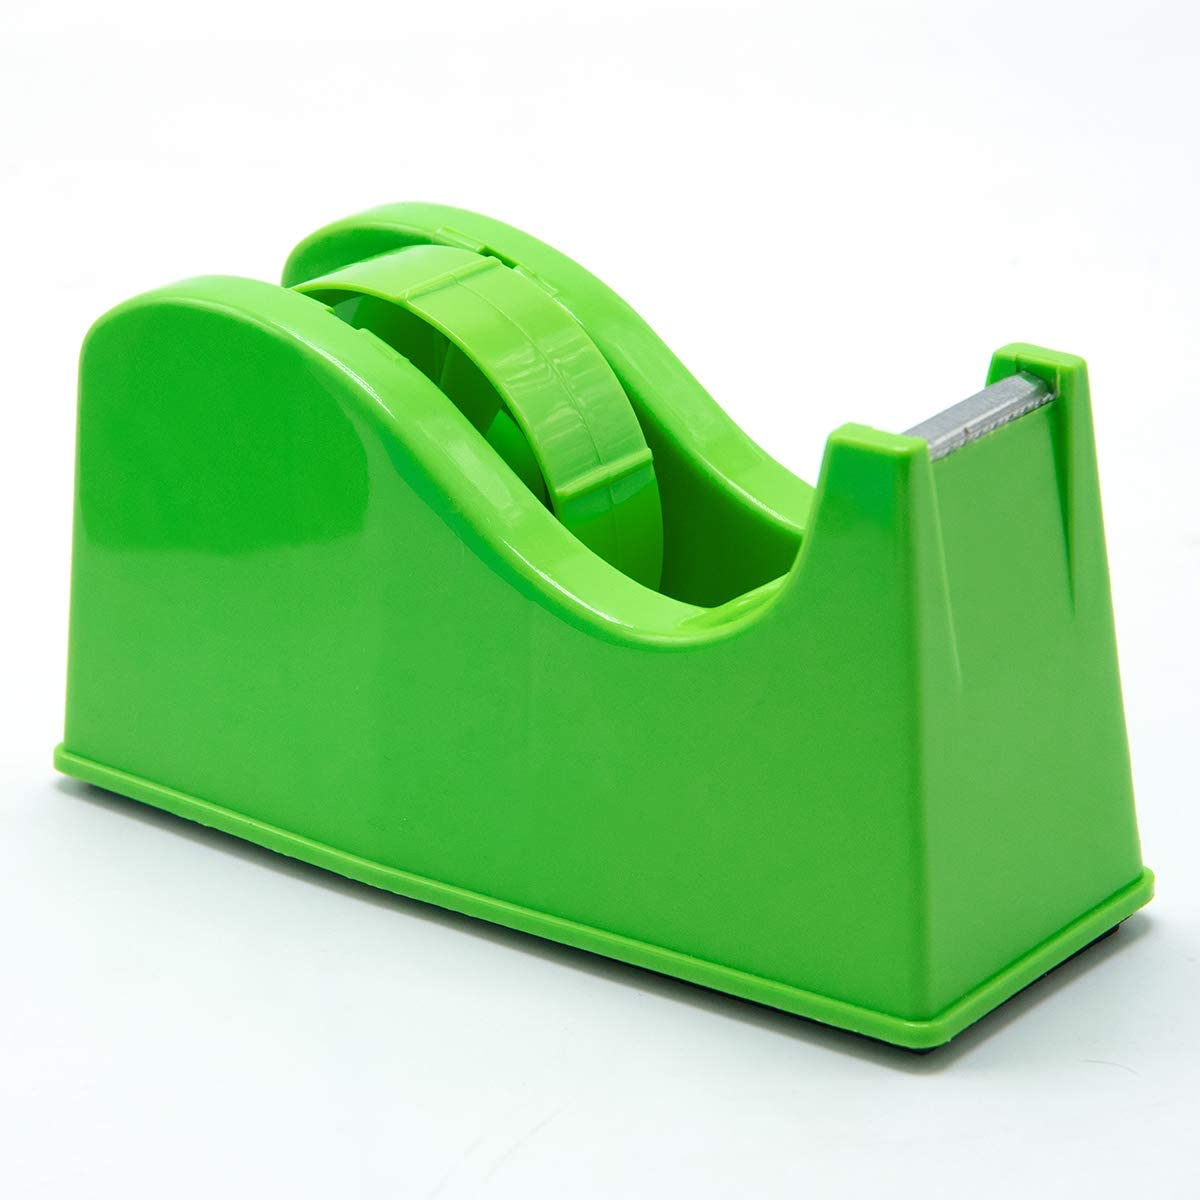 "Desktop Tape Dispenser Adhesive Roll Holder (Fits 1"" & 3"" Core) with Weighted Nonskid Base Green"